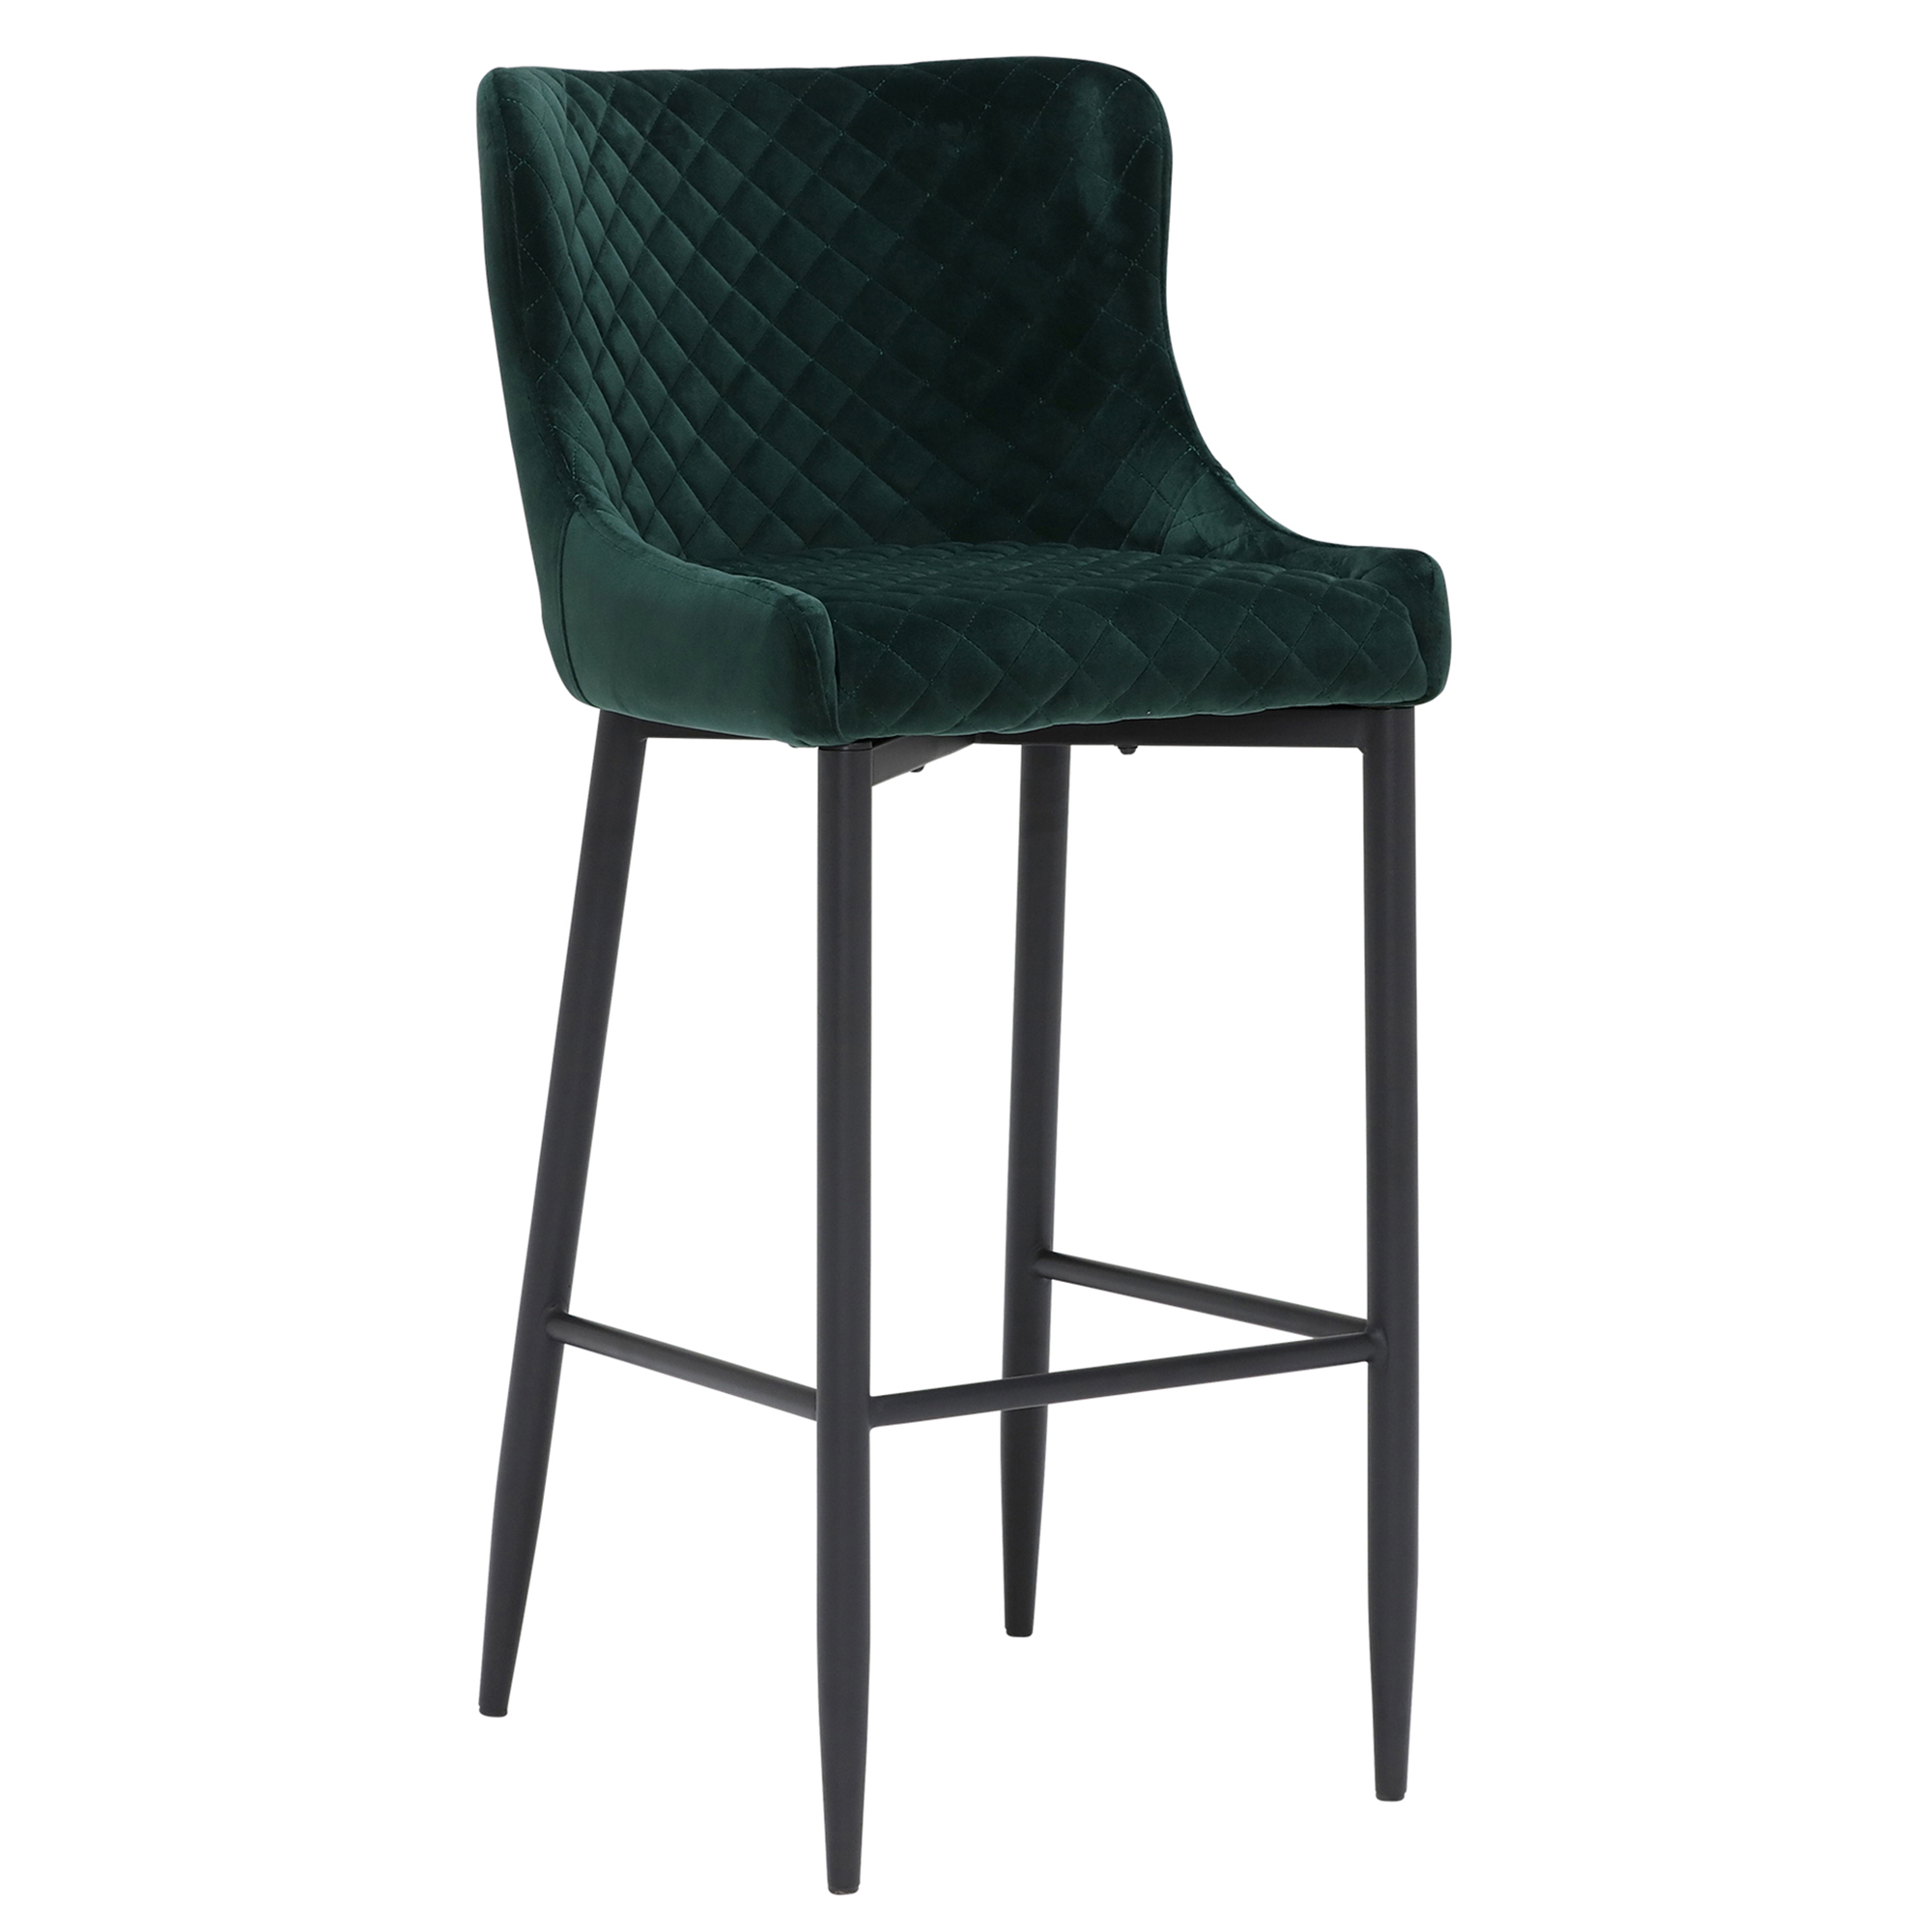 contemporary design dark green fabric upholstered bar stool